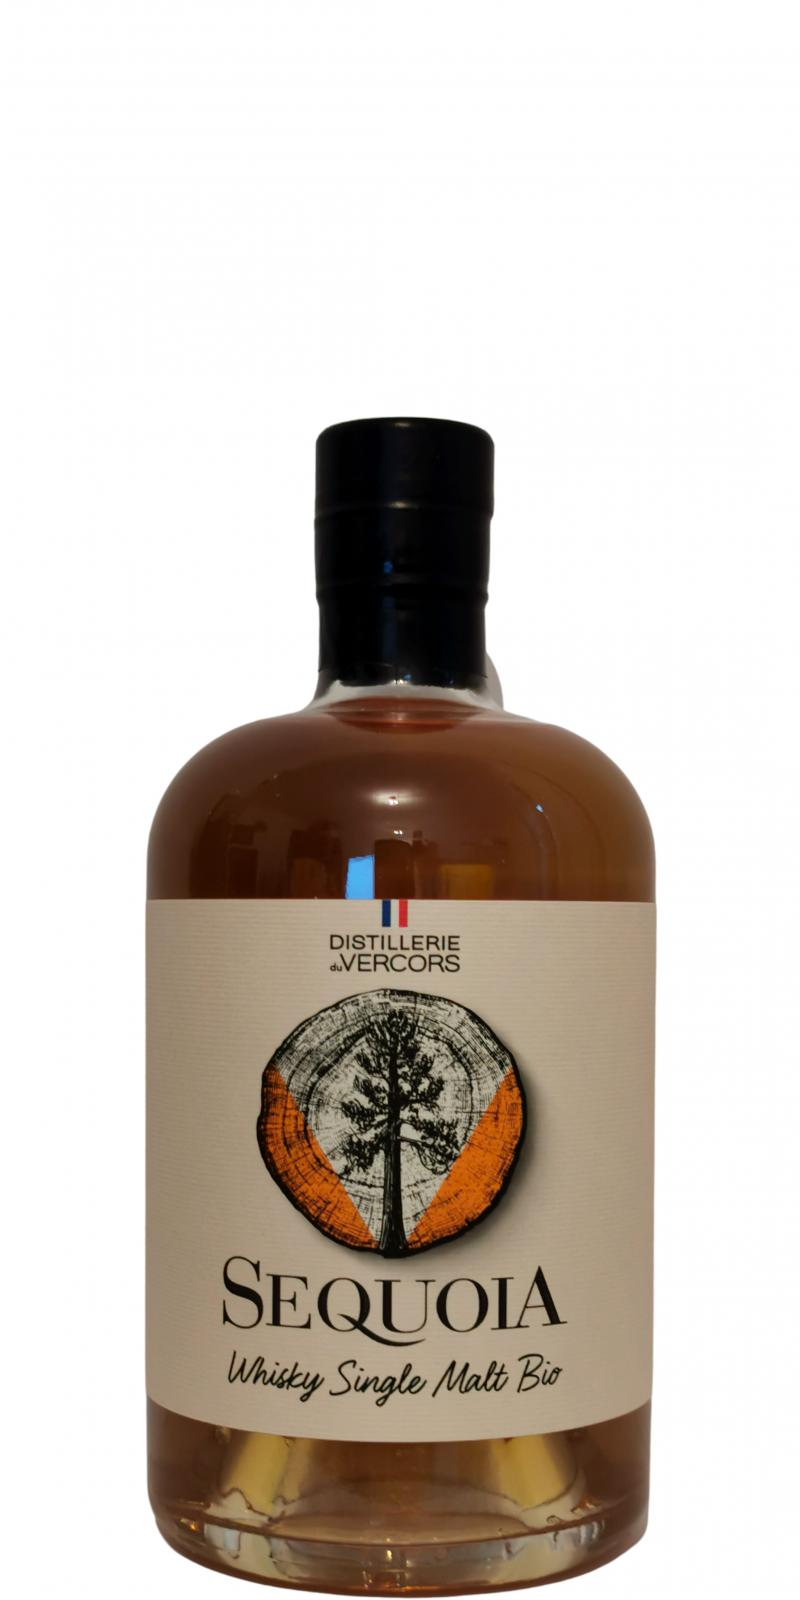 Séquoia Whisky Single Malt Bio